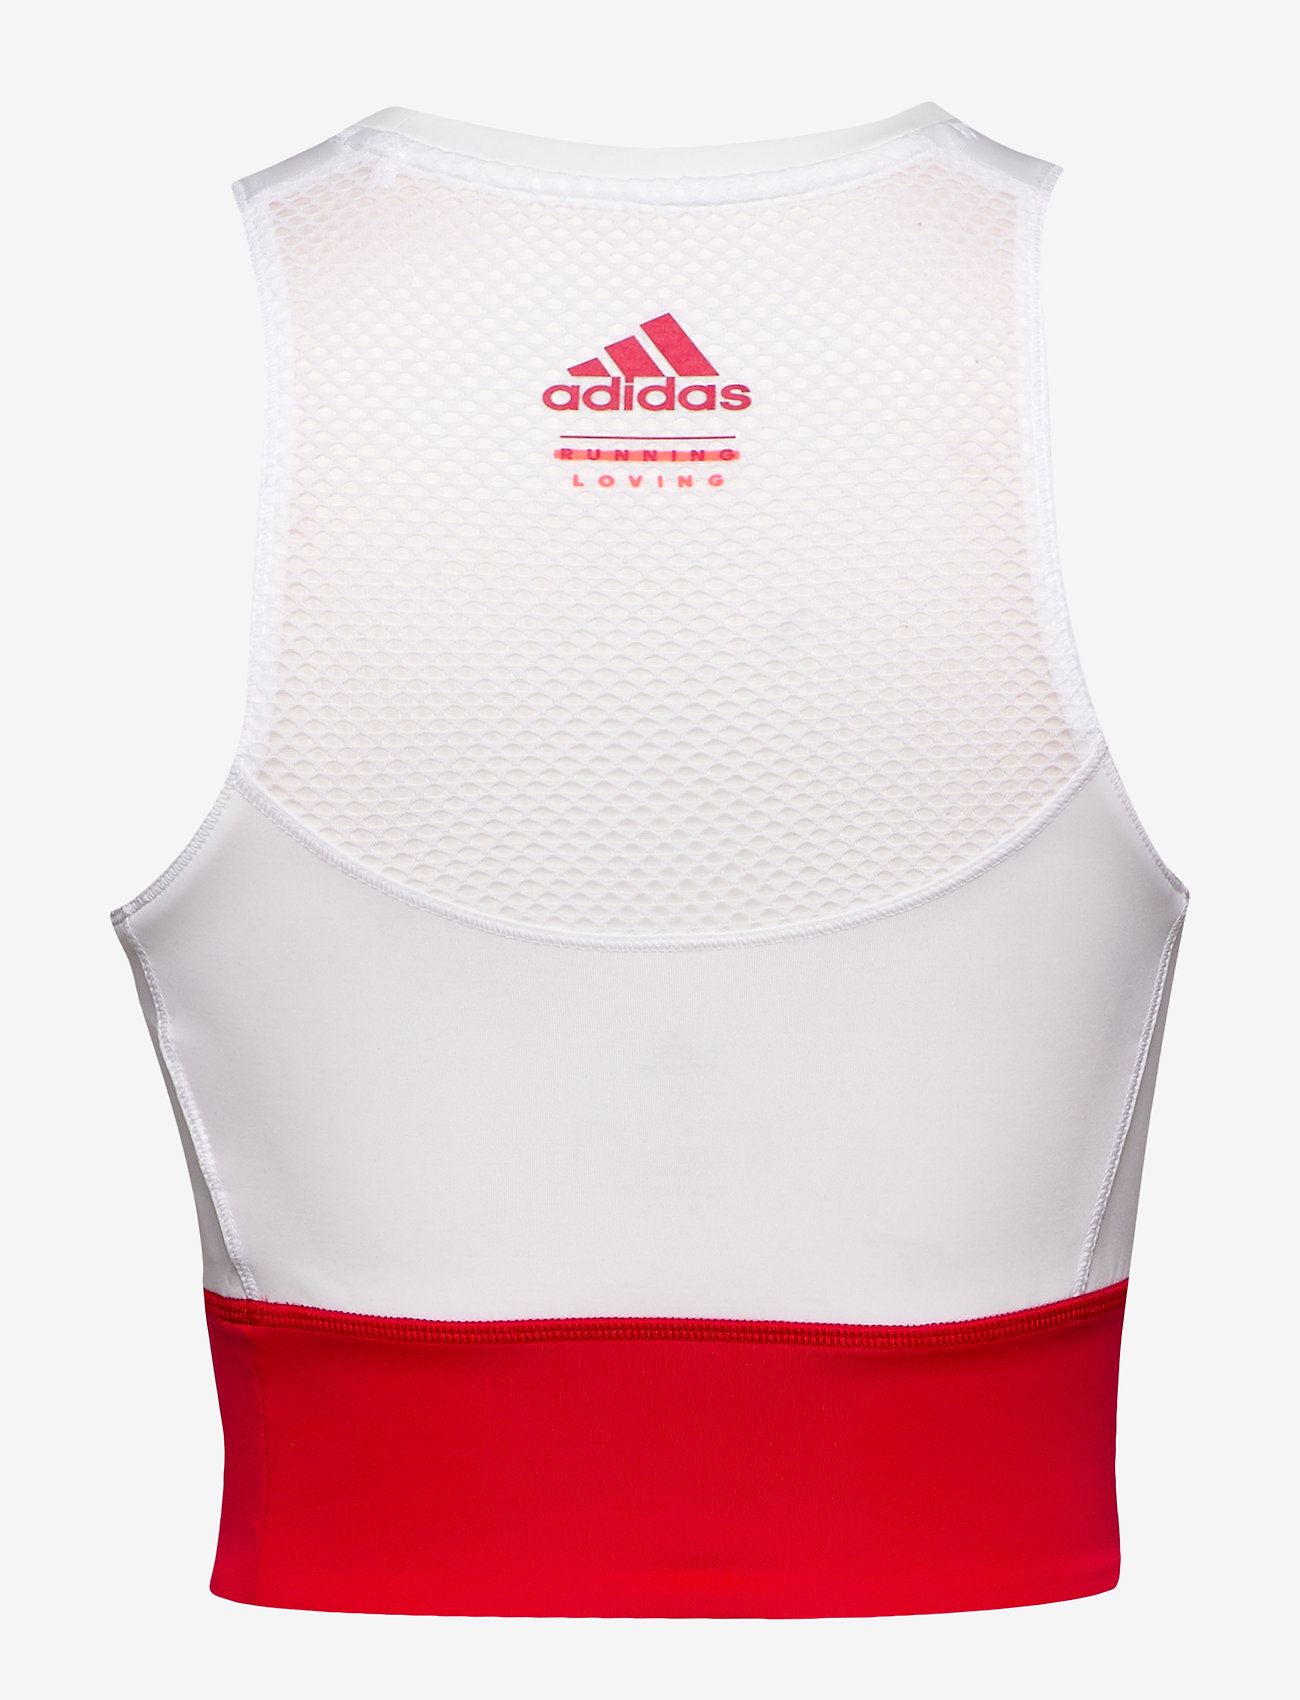 adidas Performance OTR CROP VAL - T-shirts & Tops WHITE/SCARLE